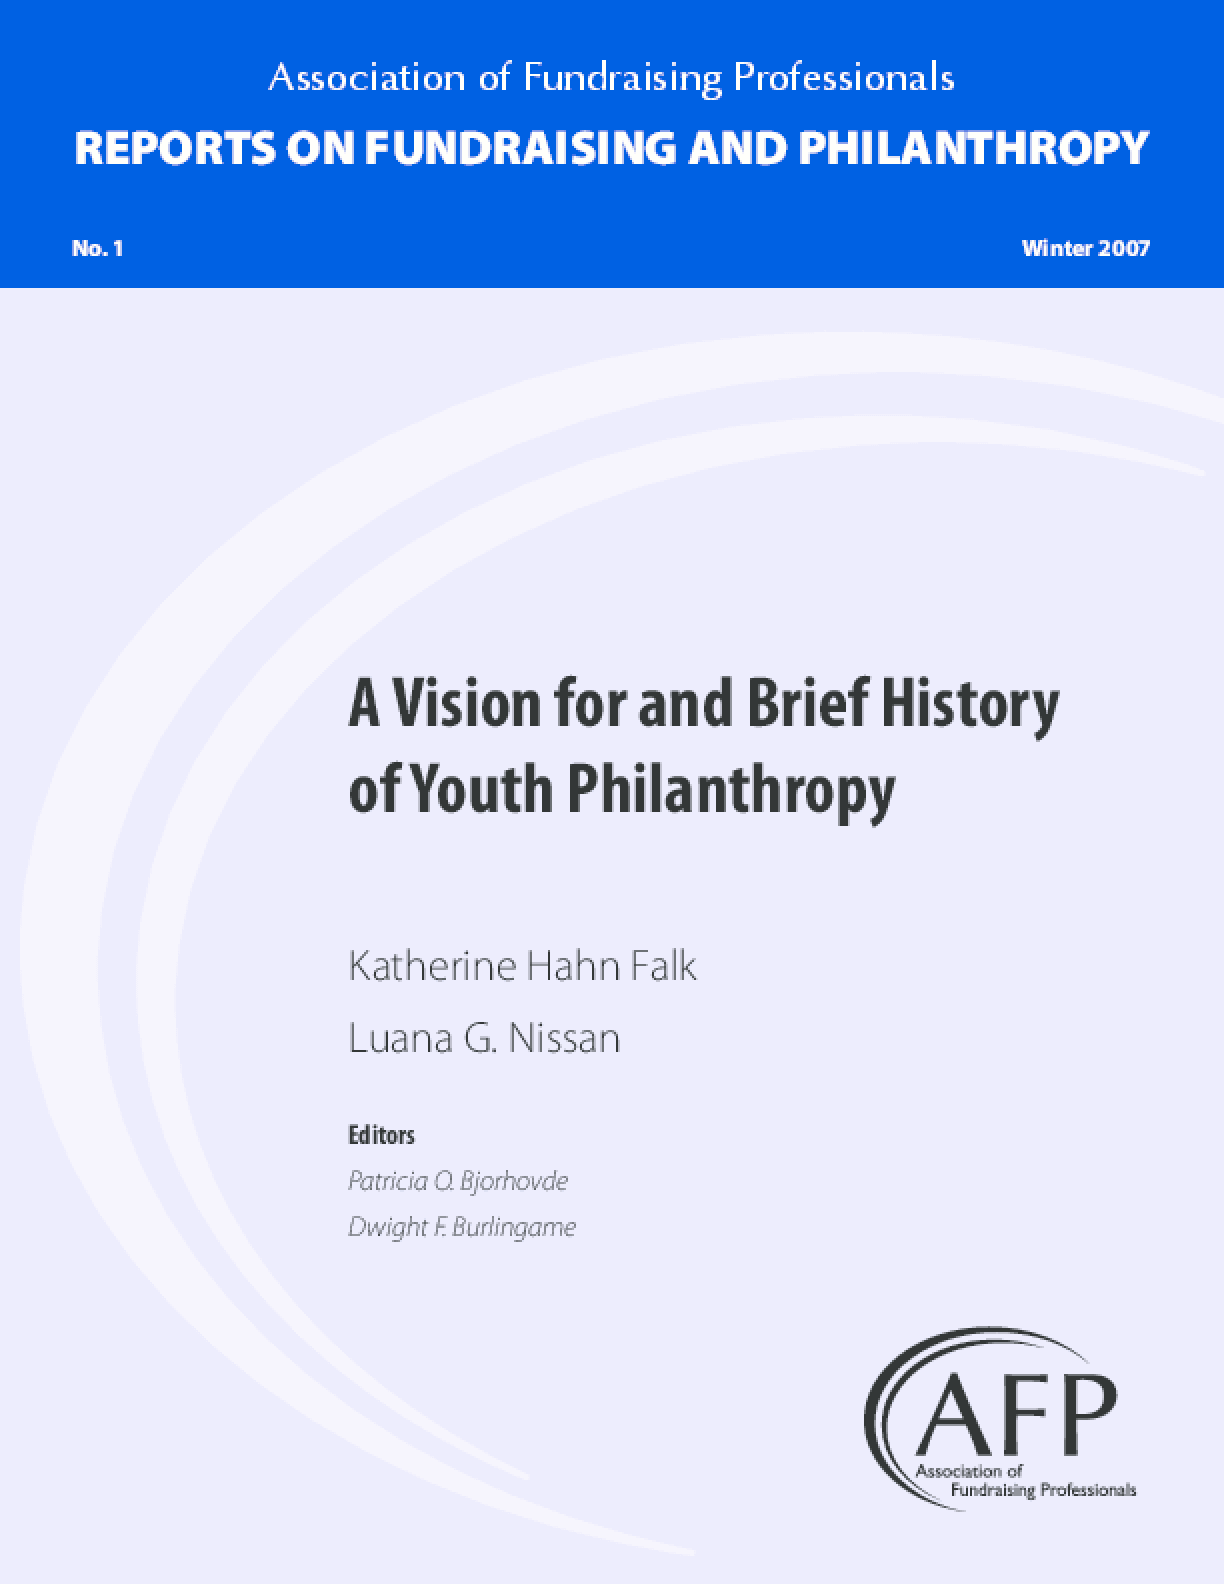 A Vision for and Brief History of Youth Philanthropy